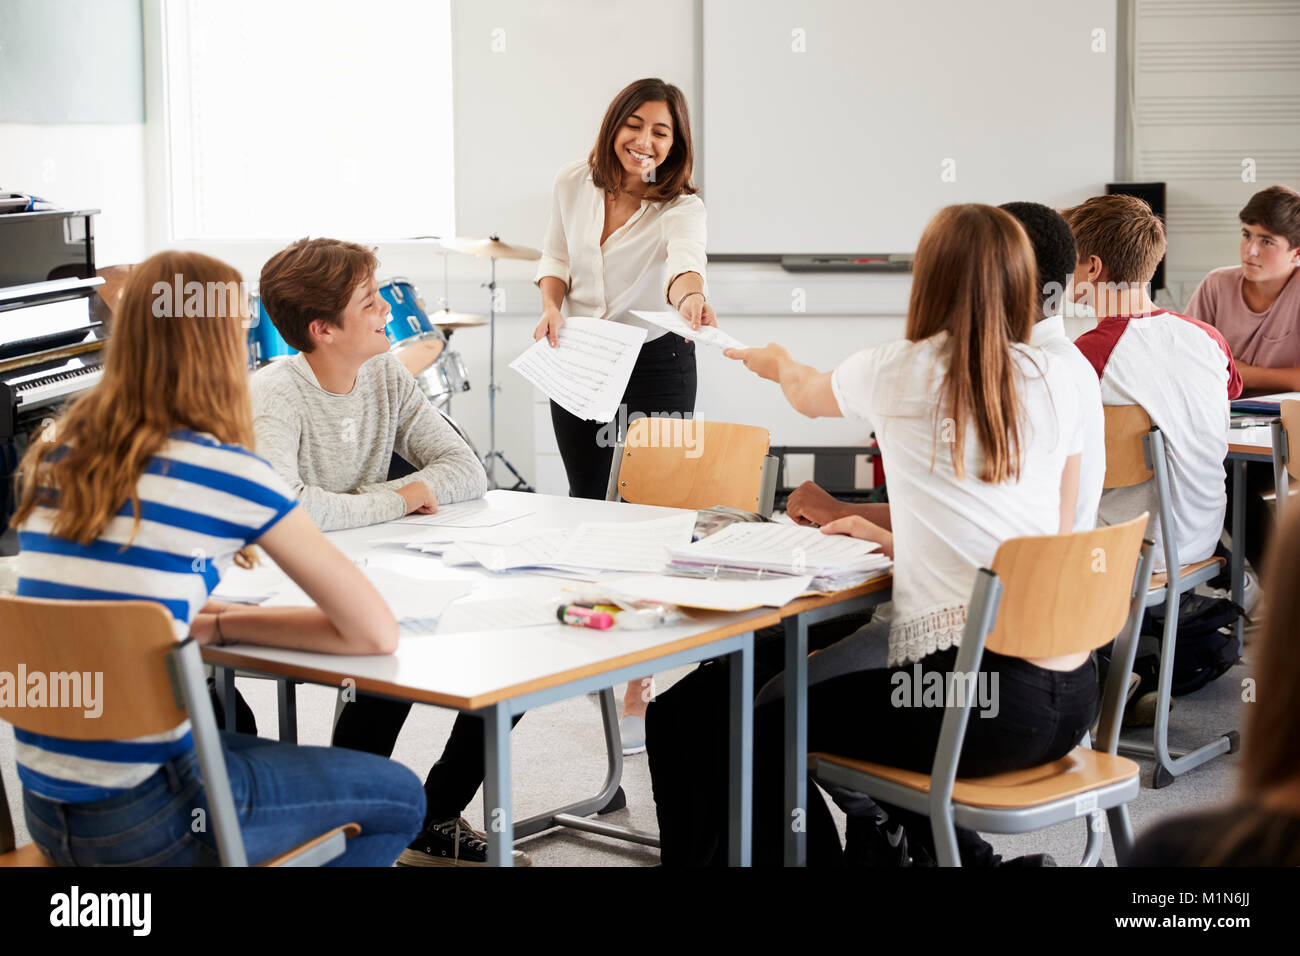 Teenage Students Studying In Music Class With Female Teacher - Stock Image